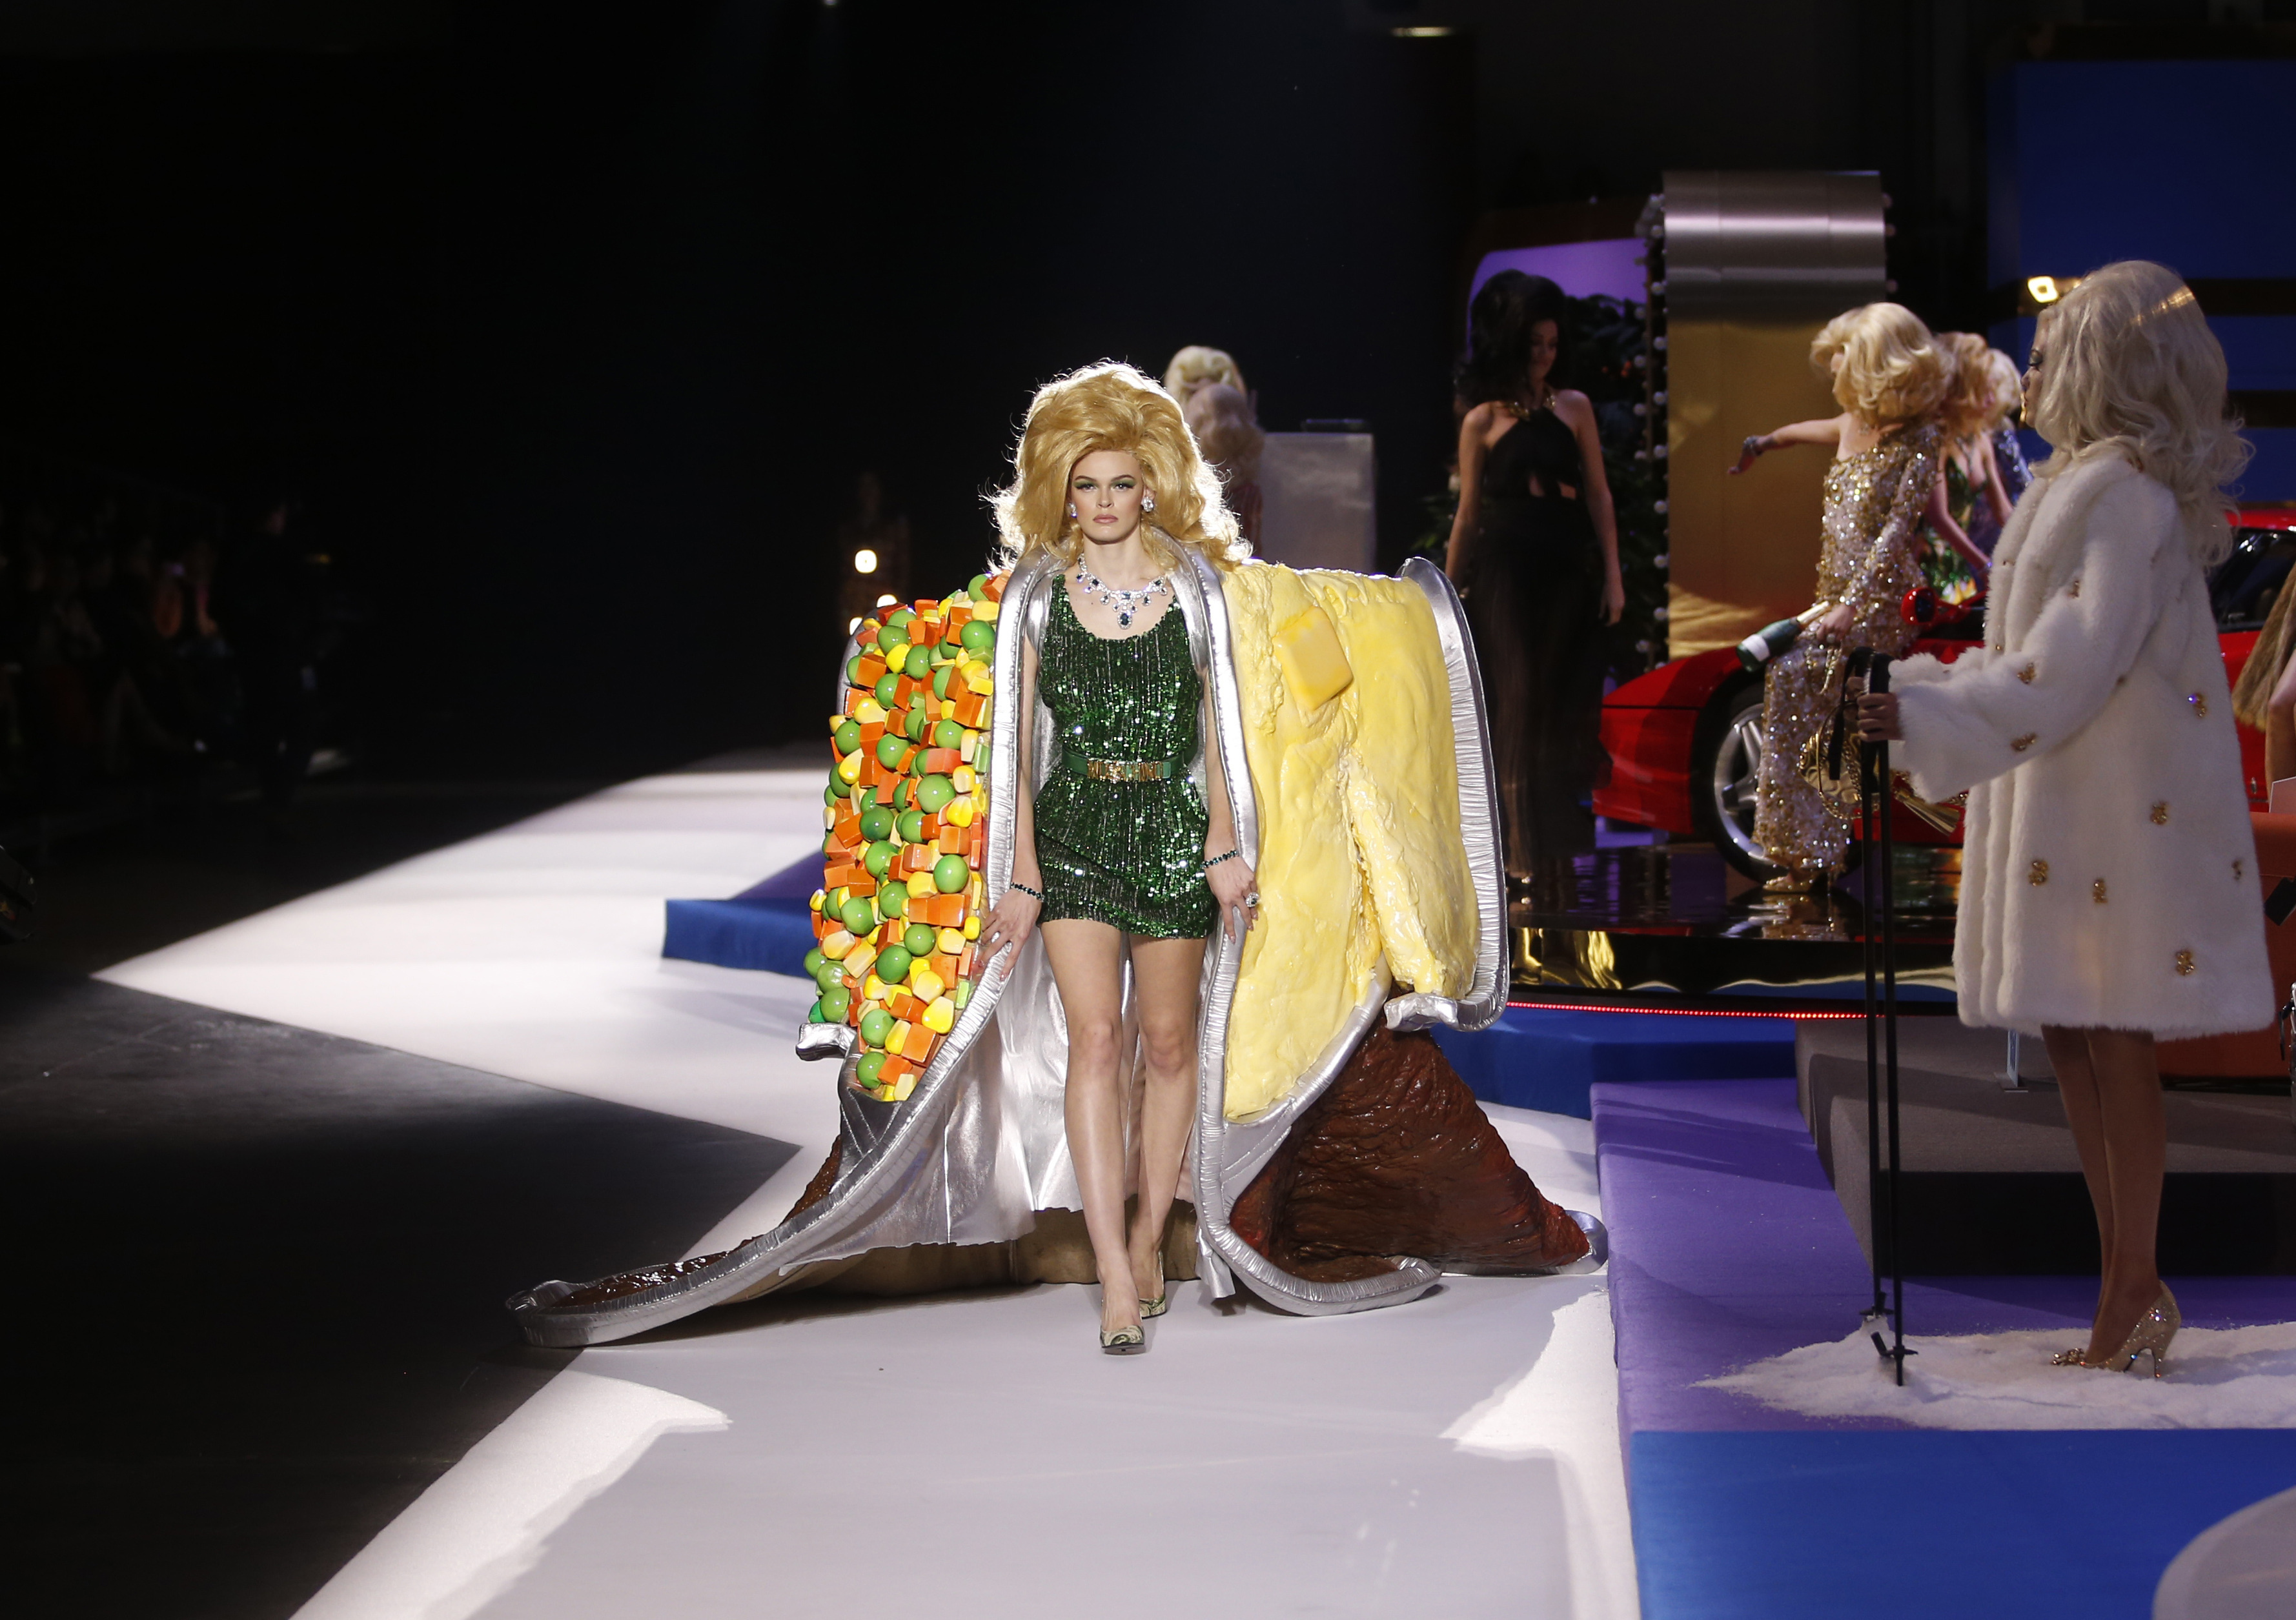 a198a3c5cb6 Moschino turned its Milan Fashion Week catwalk into an incredible TV ...